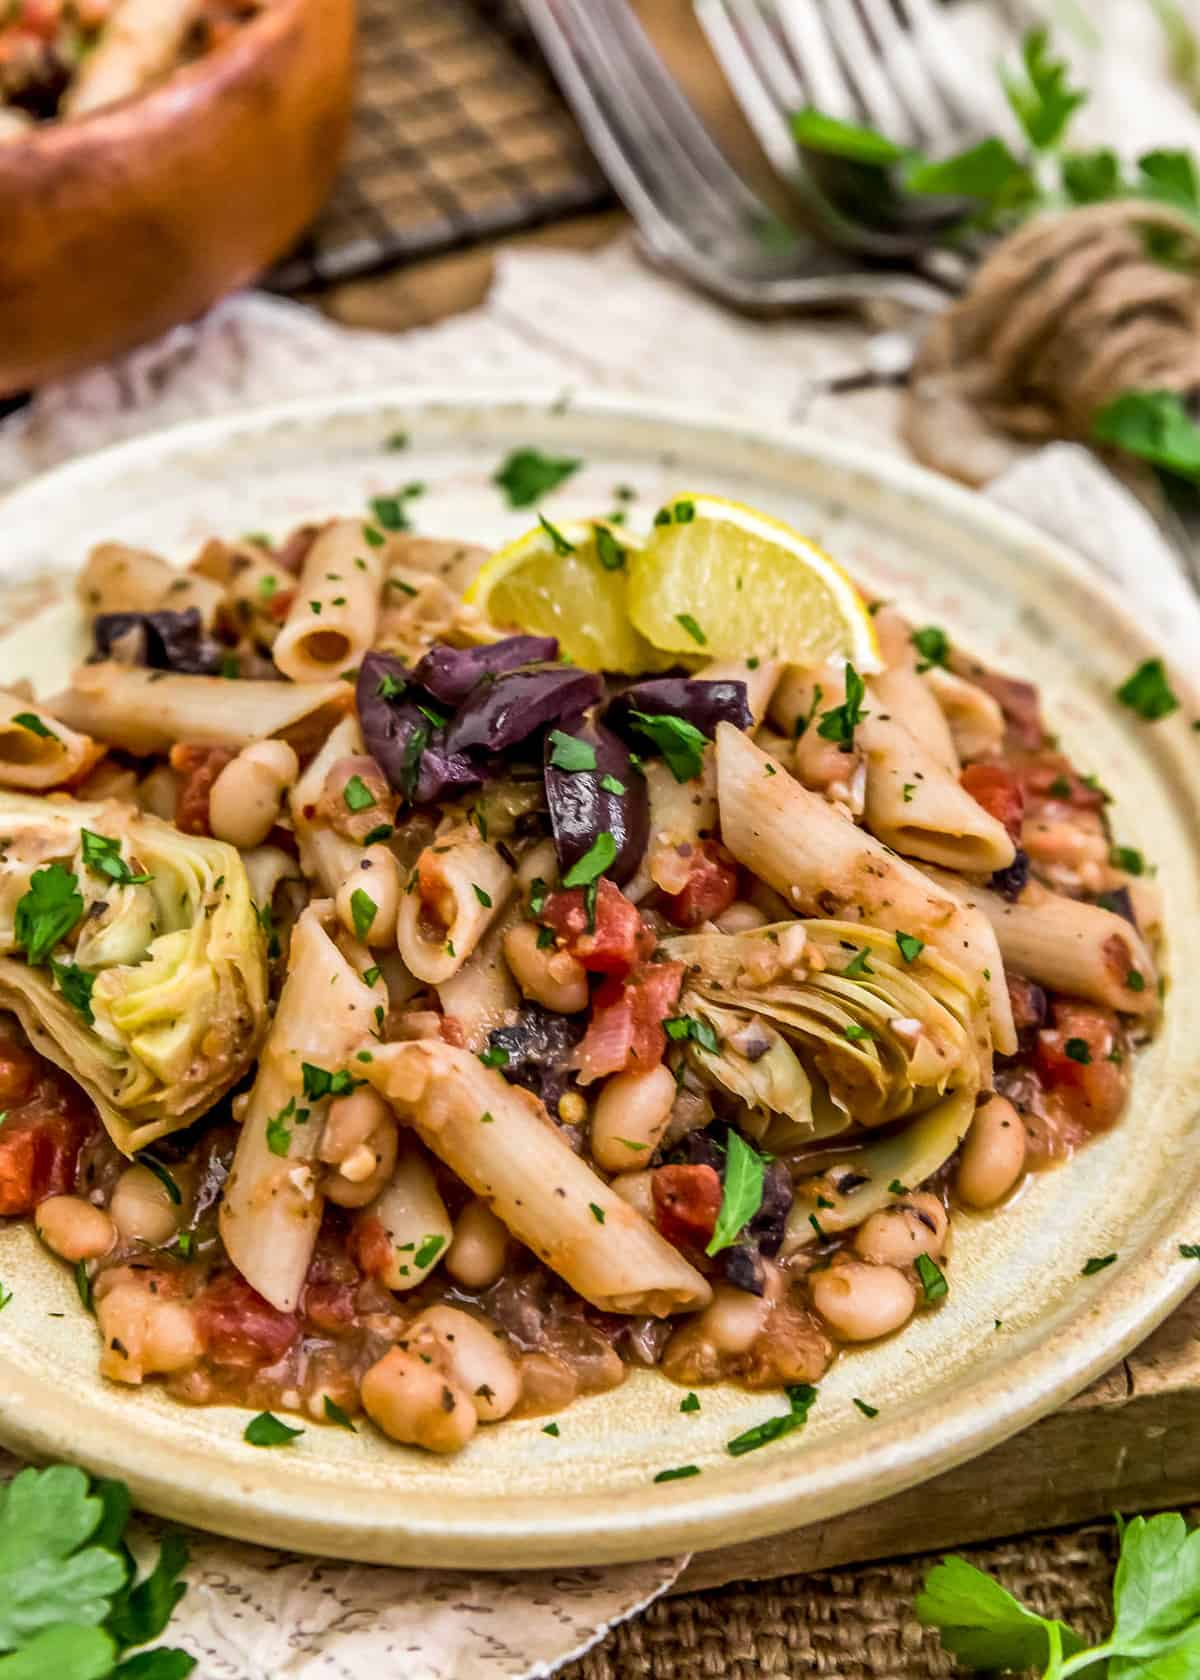 Plate of Vegan Greek Pasta